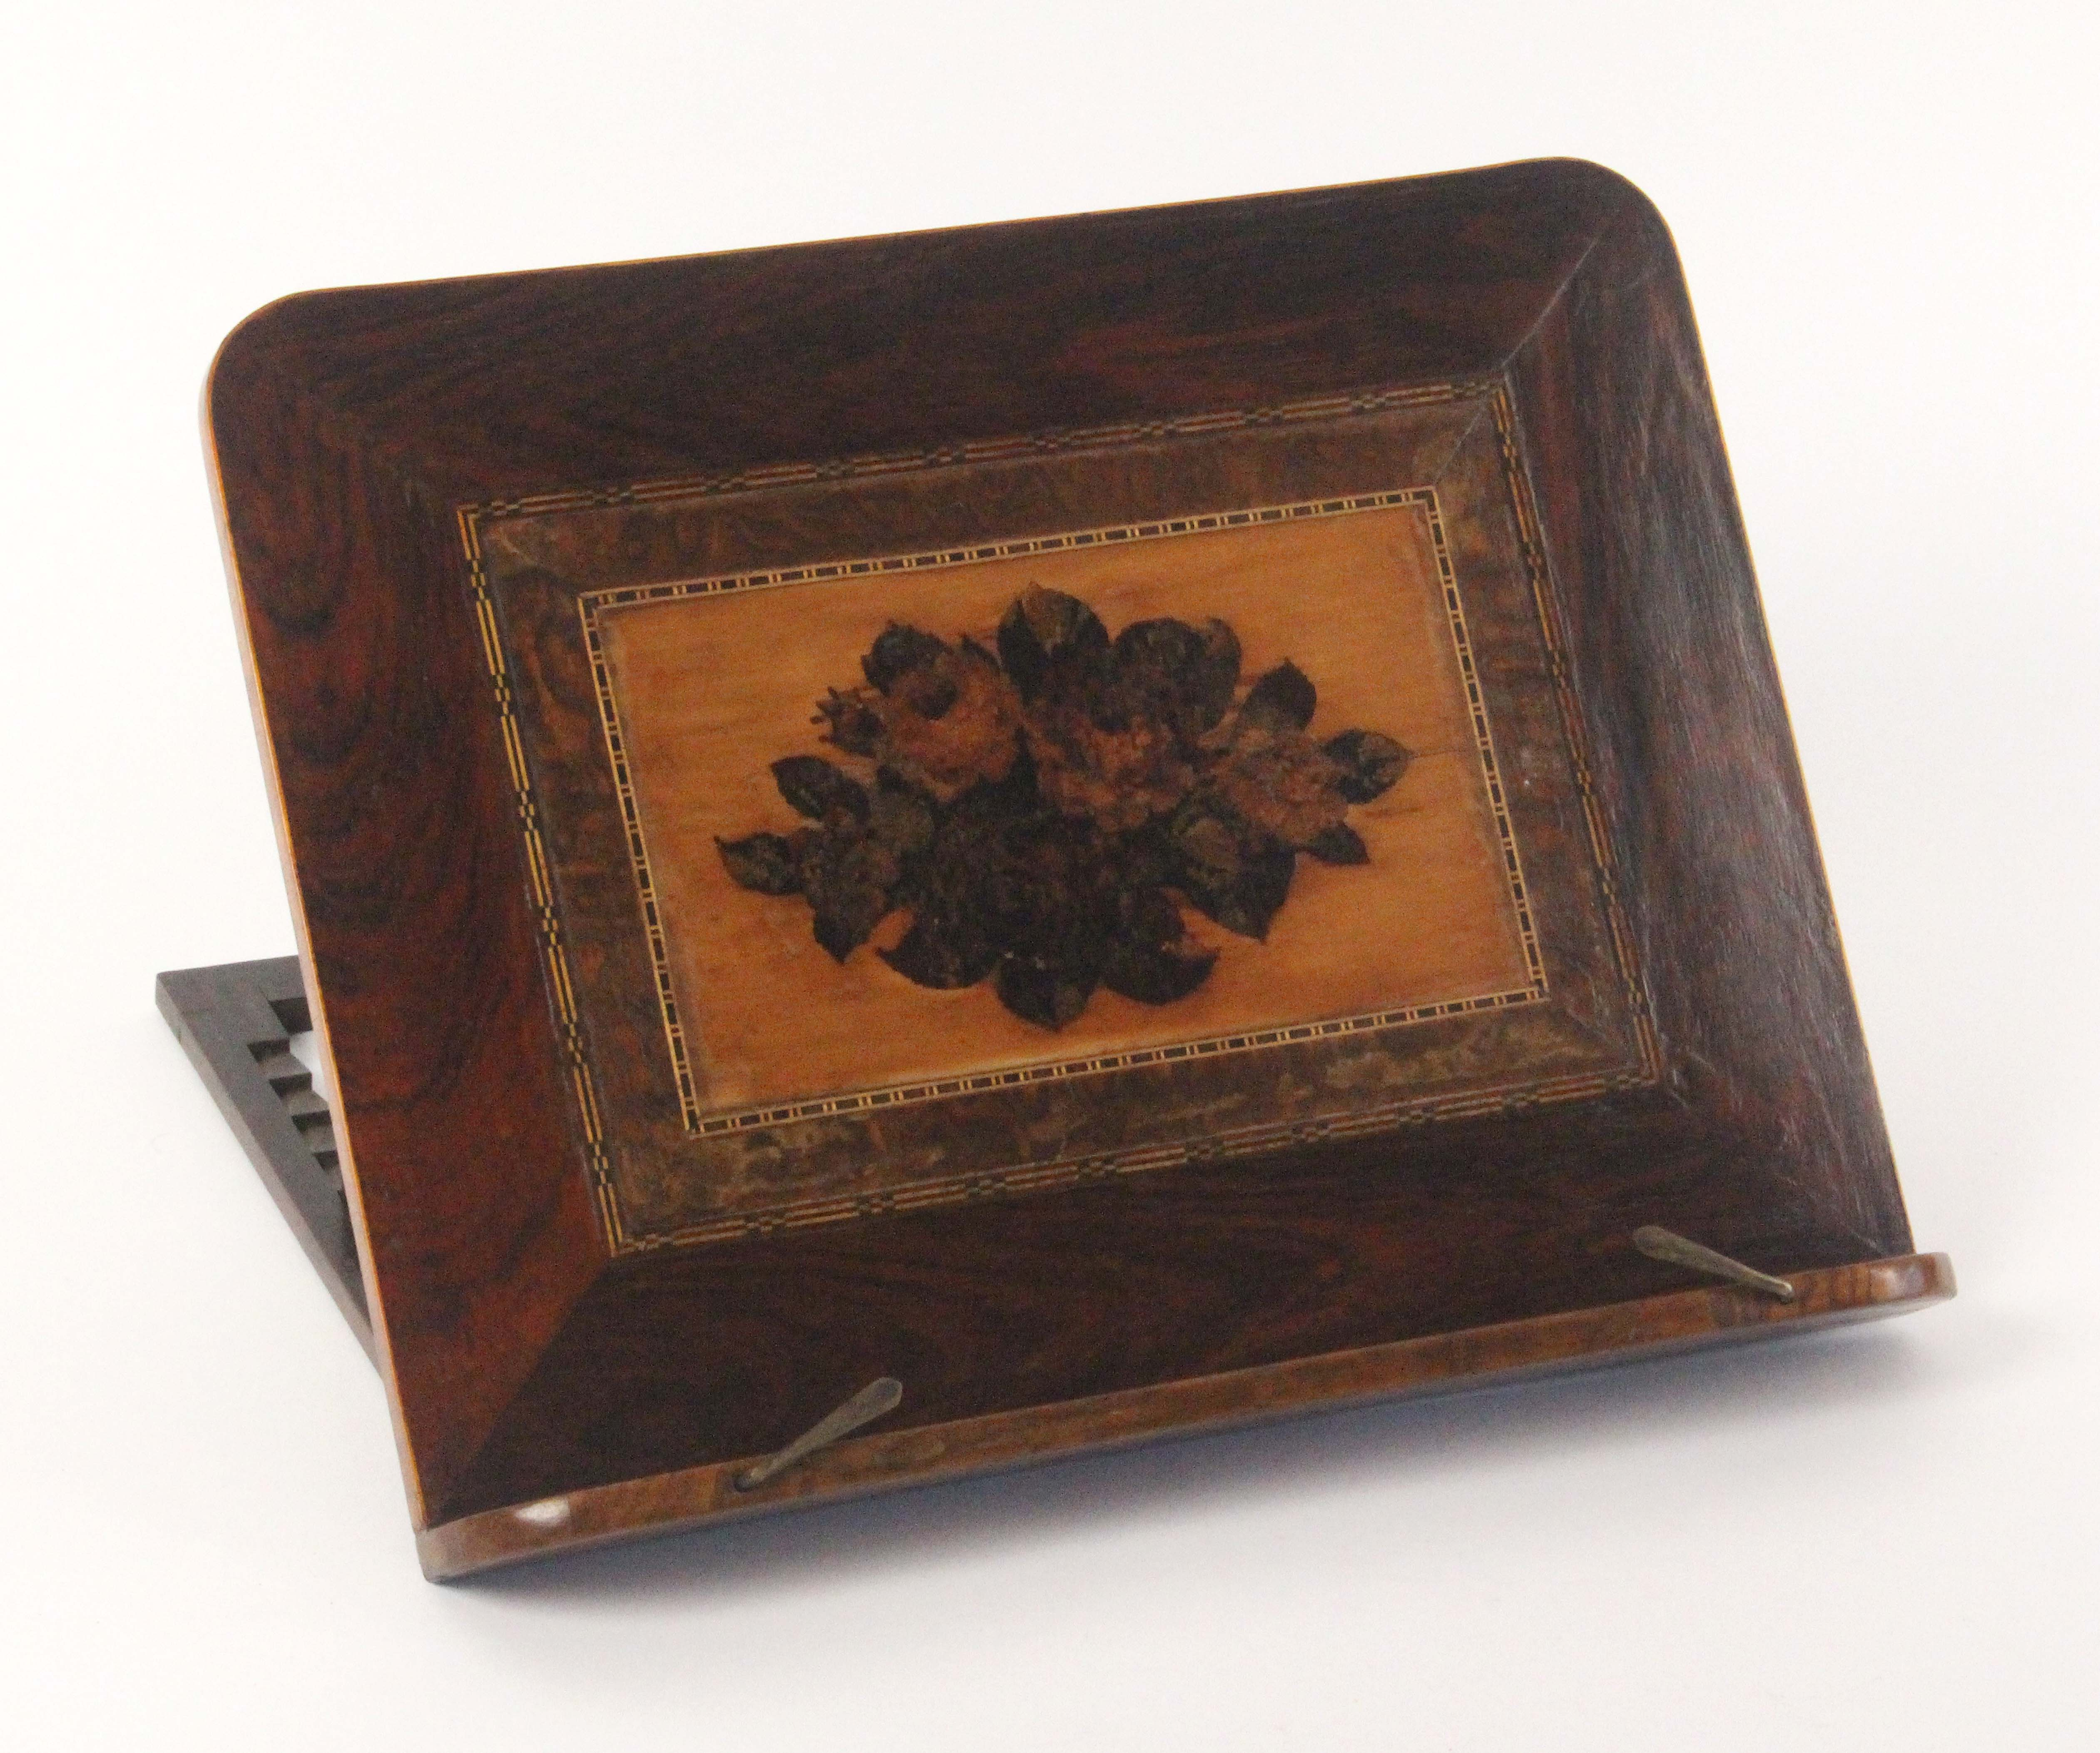 Lot 21 - A Tunbridge ware mixed woods table reading or music stand, the stand with a panel of floral mosaic